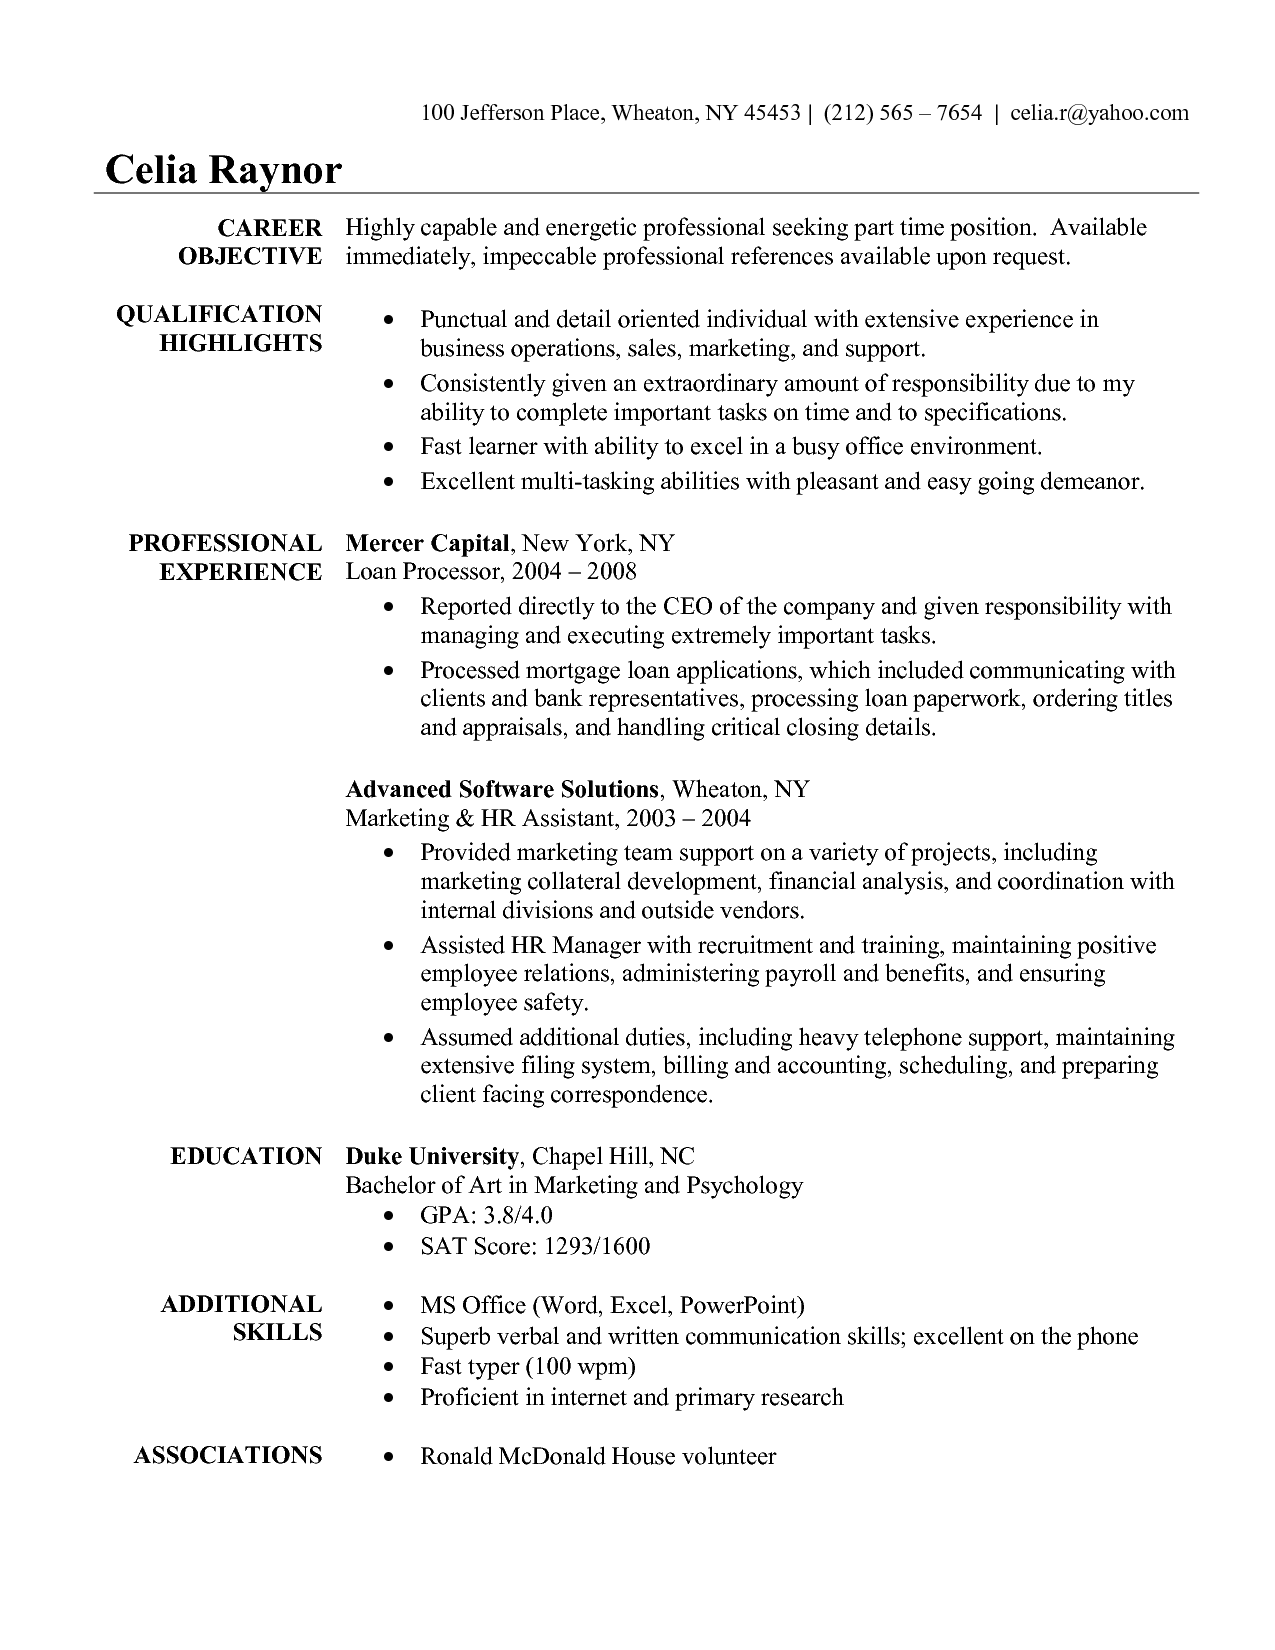 sample resume skills best images about resume pinterest curriculum best images about resume pinterest curriculum and